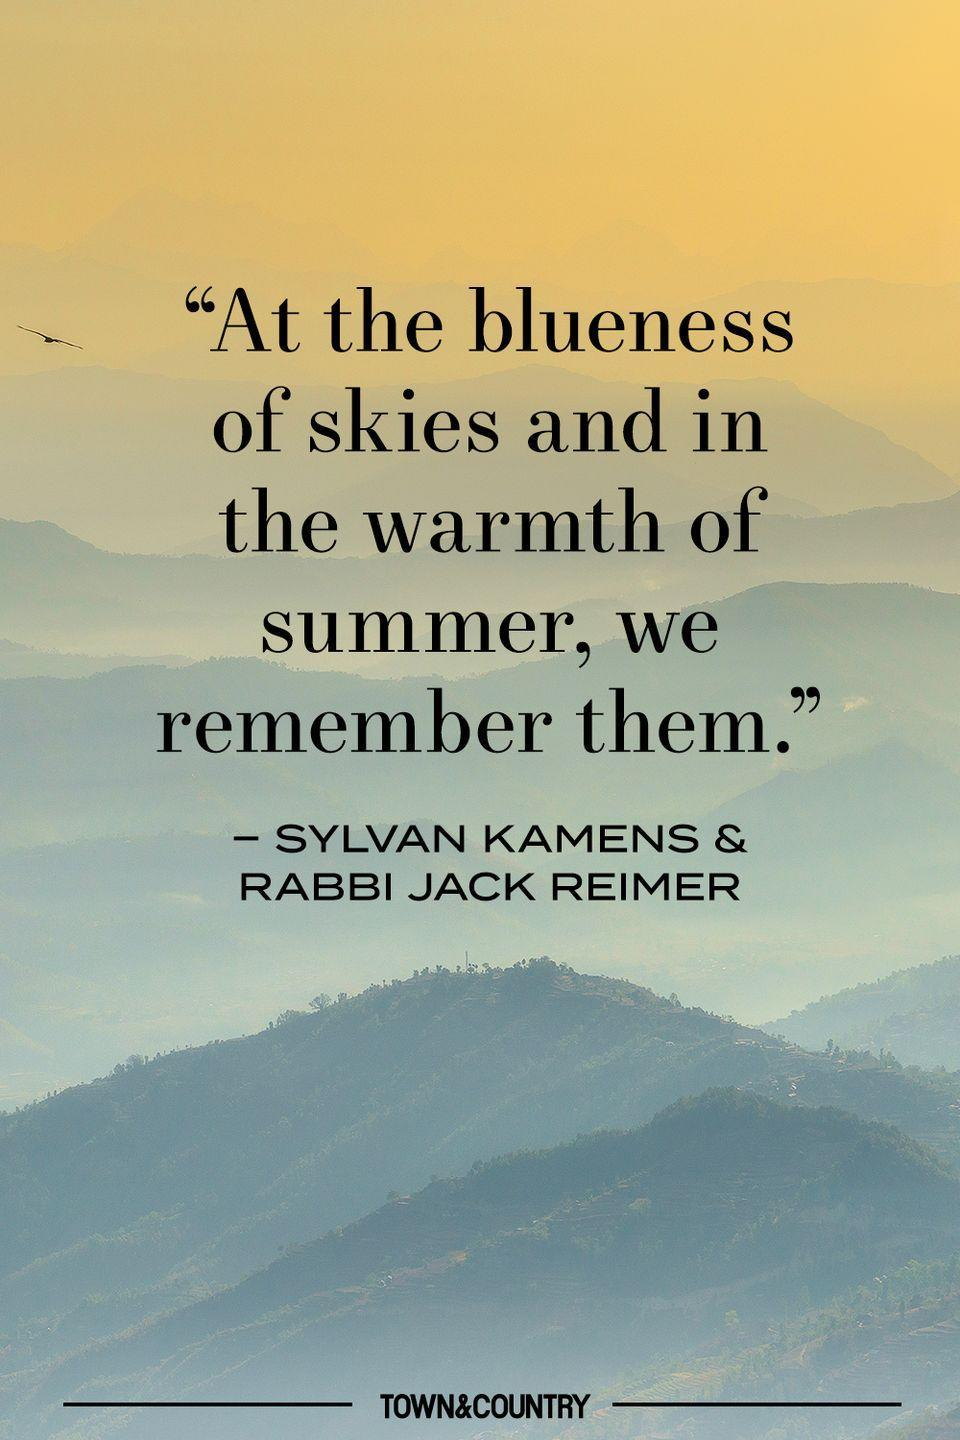 """<p>""""At the blueness of skies and in the warmth of summer, we remember them.""""</p><p>– Sylvan Kamens & Rabbi Jack Reimer </p>"""